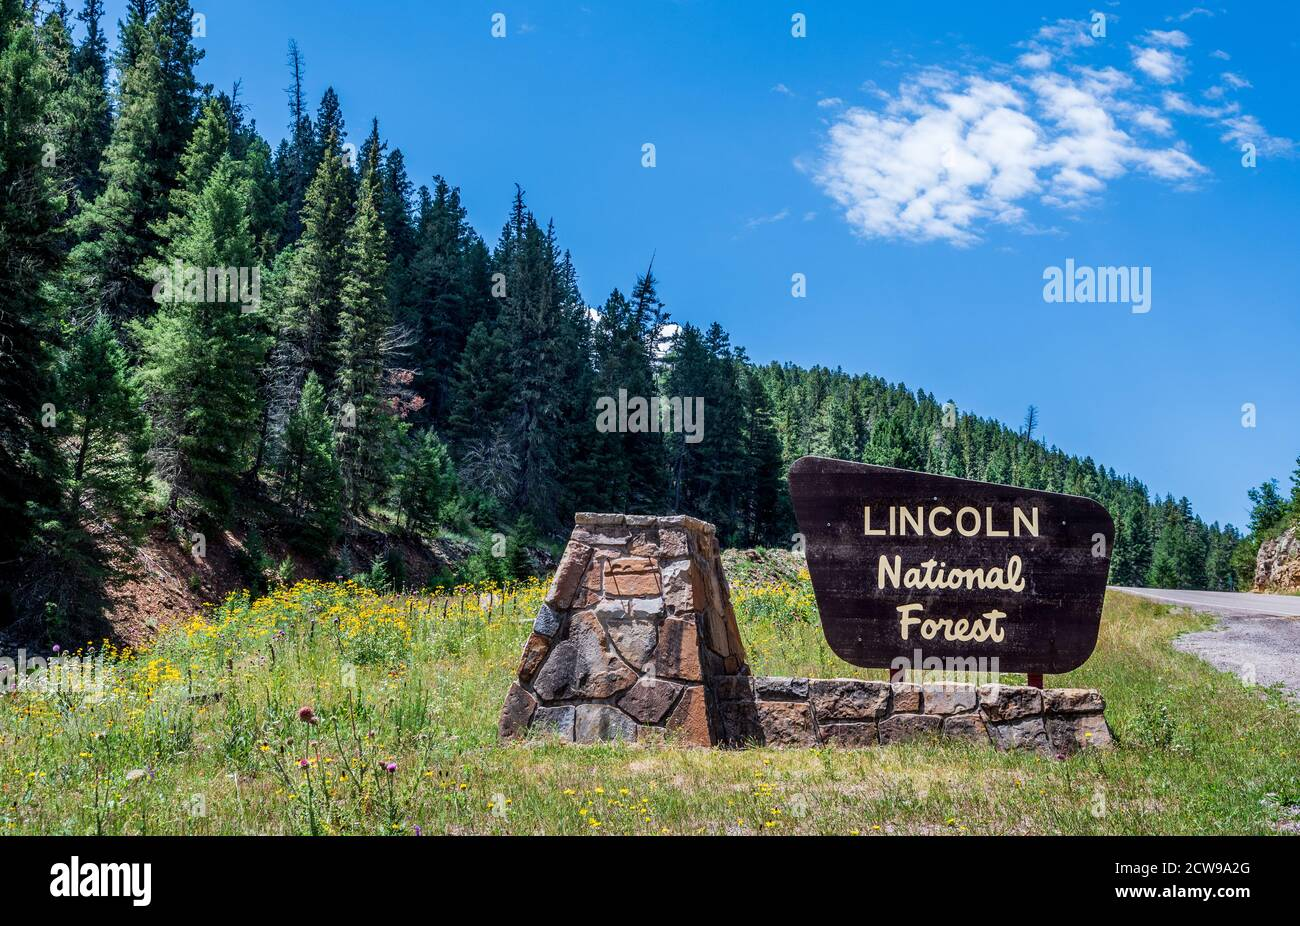 National Forest USFS New Mexico Lincoln National Forest US Forest Service Alamog